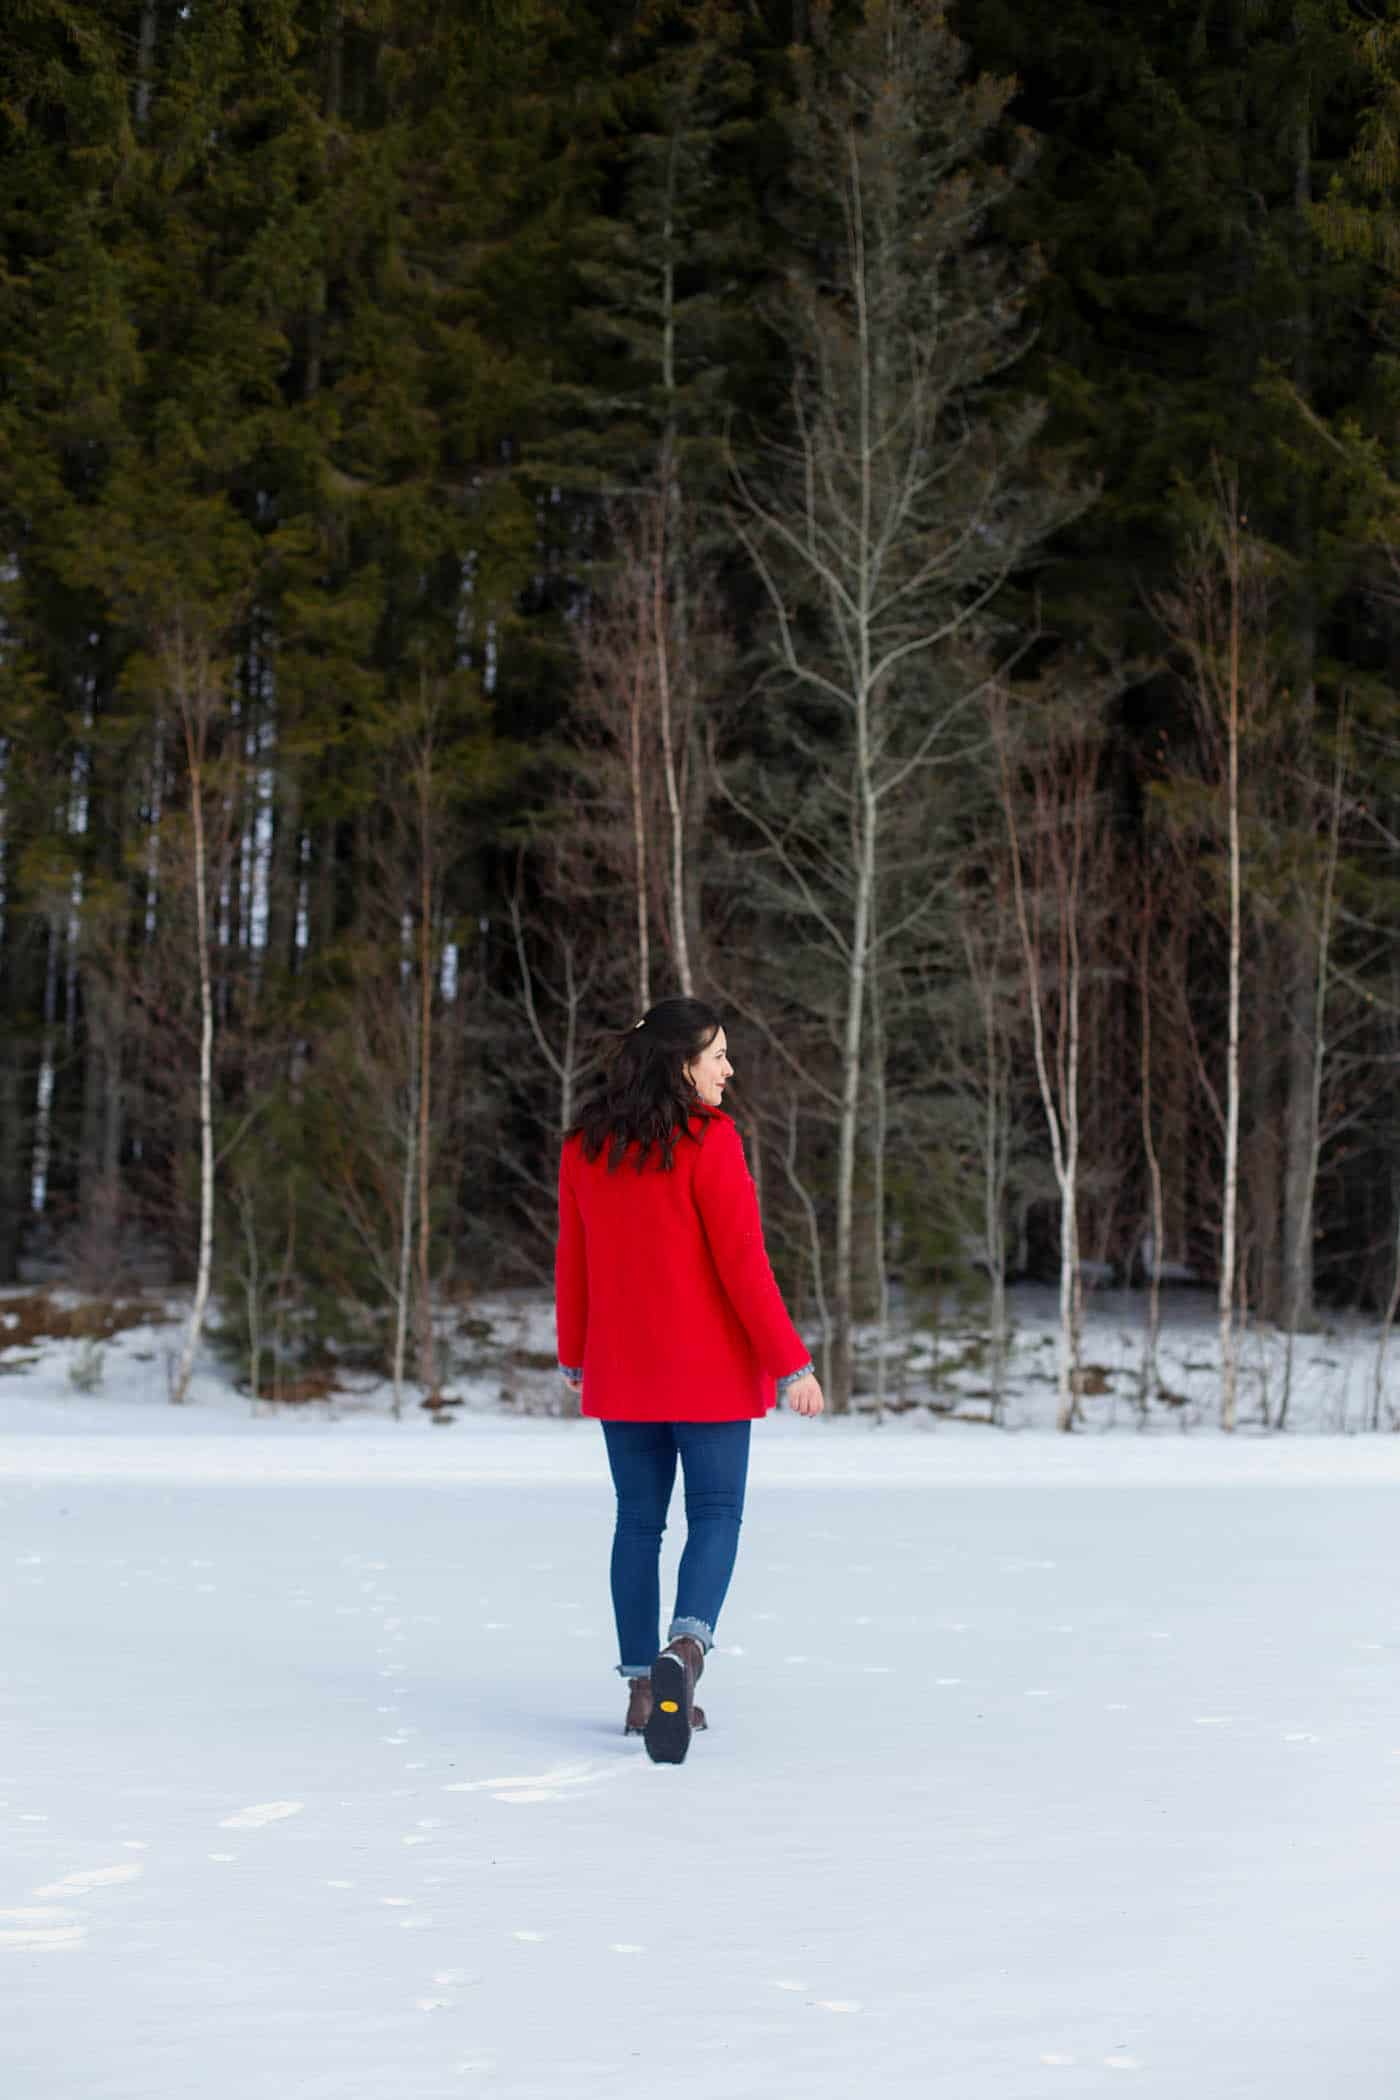 red winter coat, winter wonderland, things to do in Stowe Vermont - My Style Vita @mystylevita